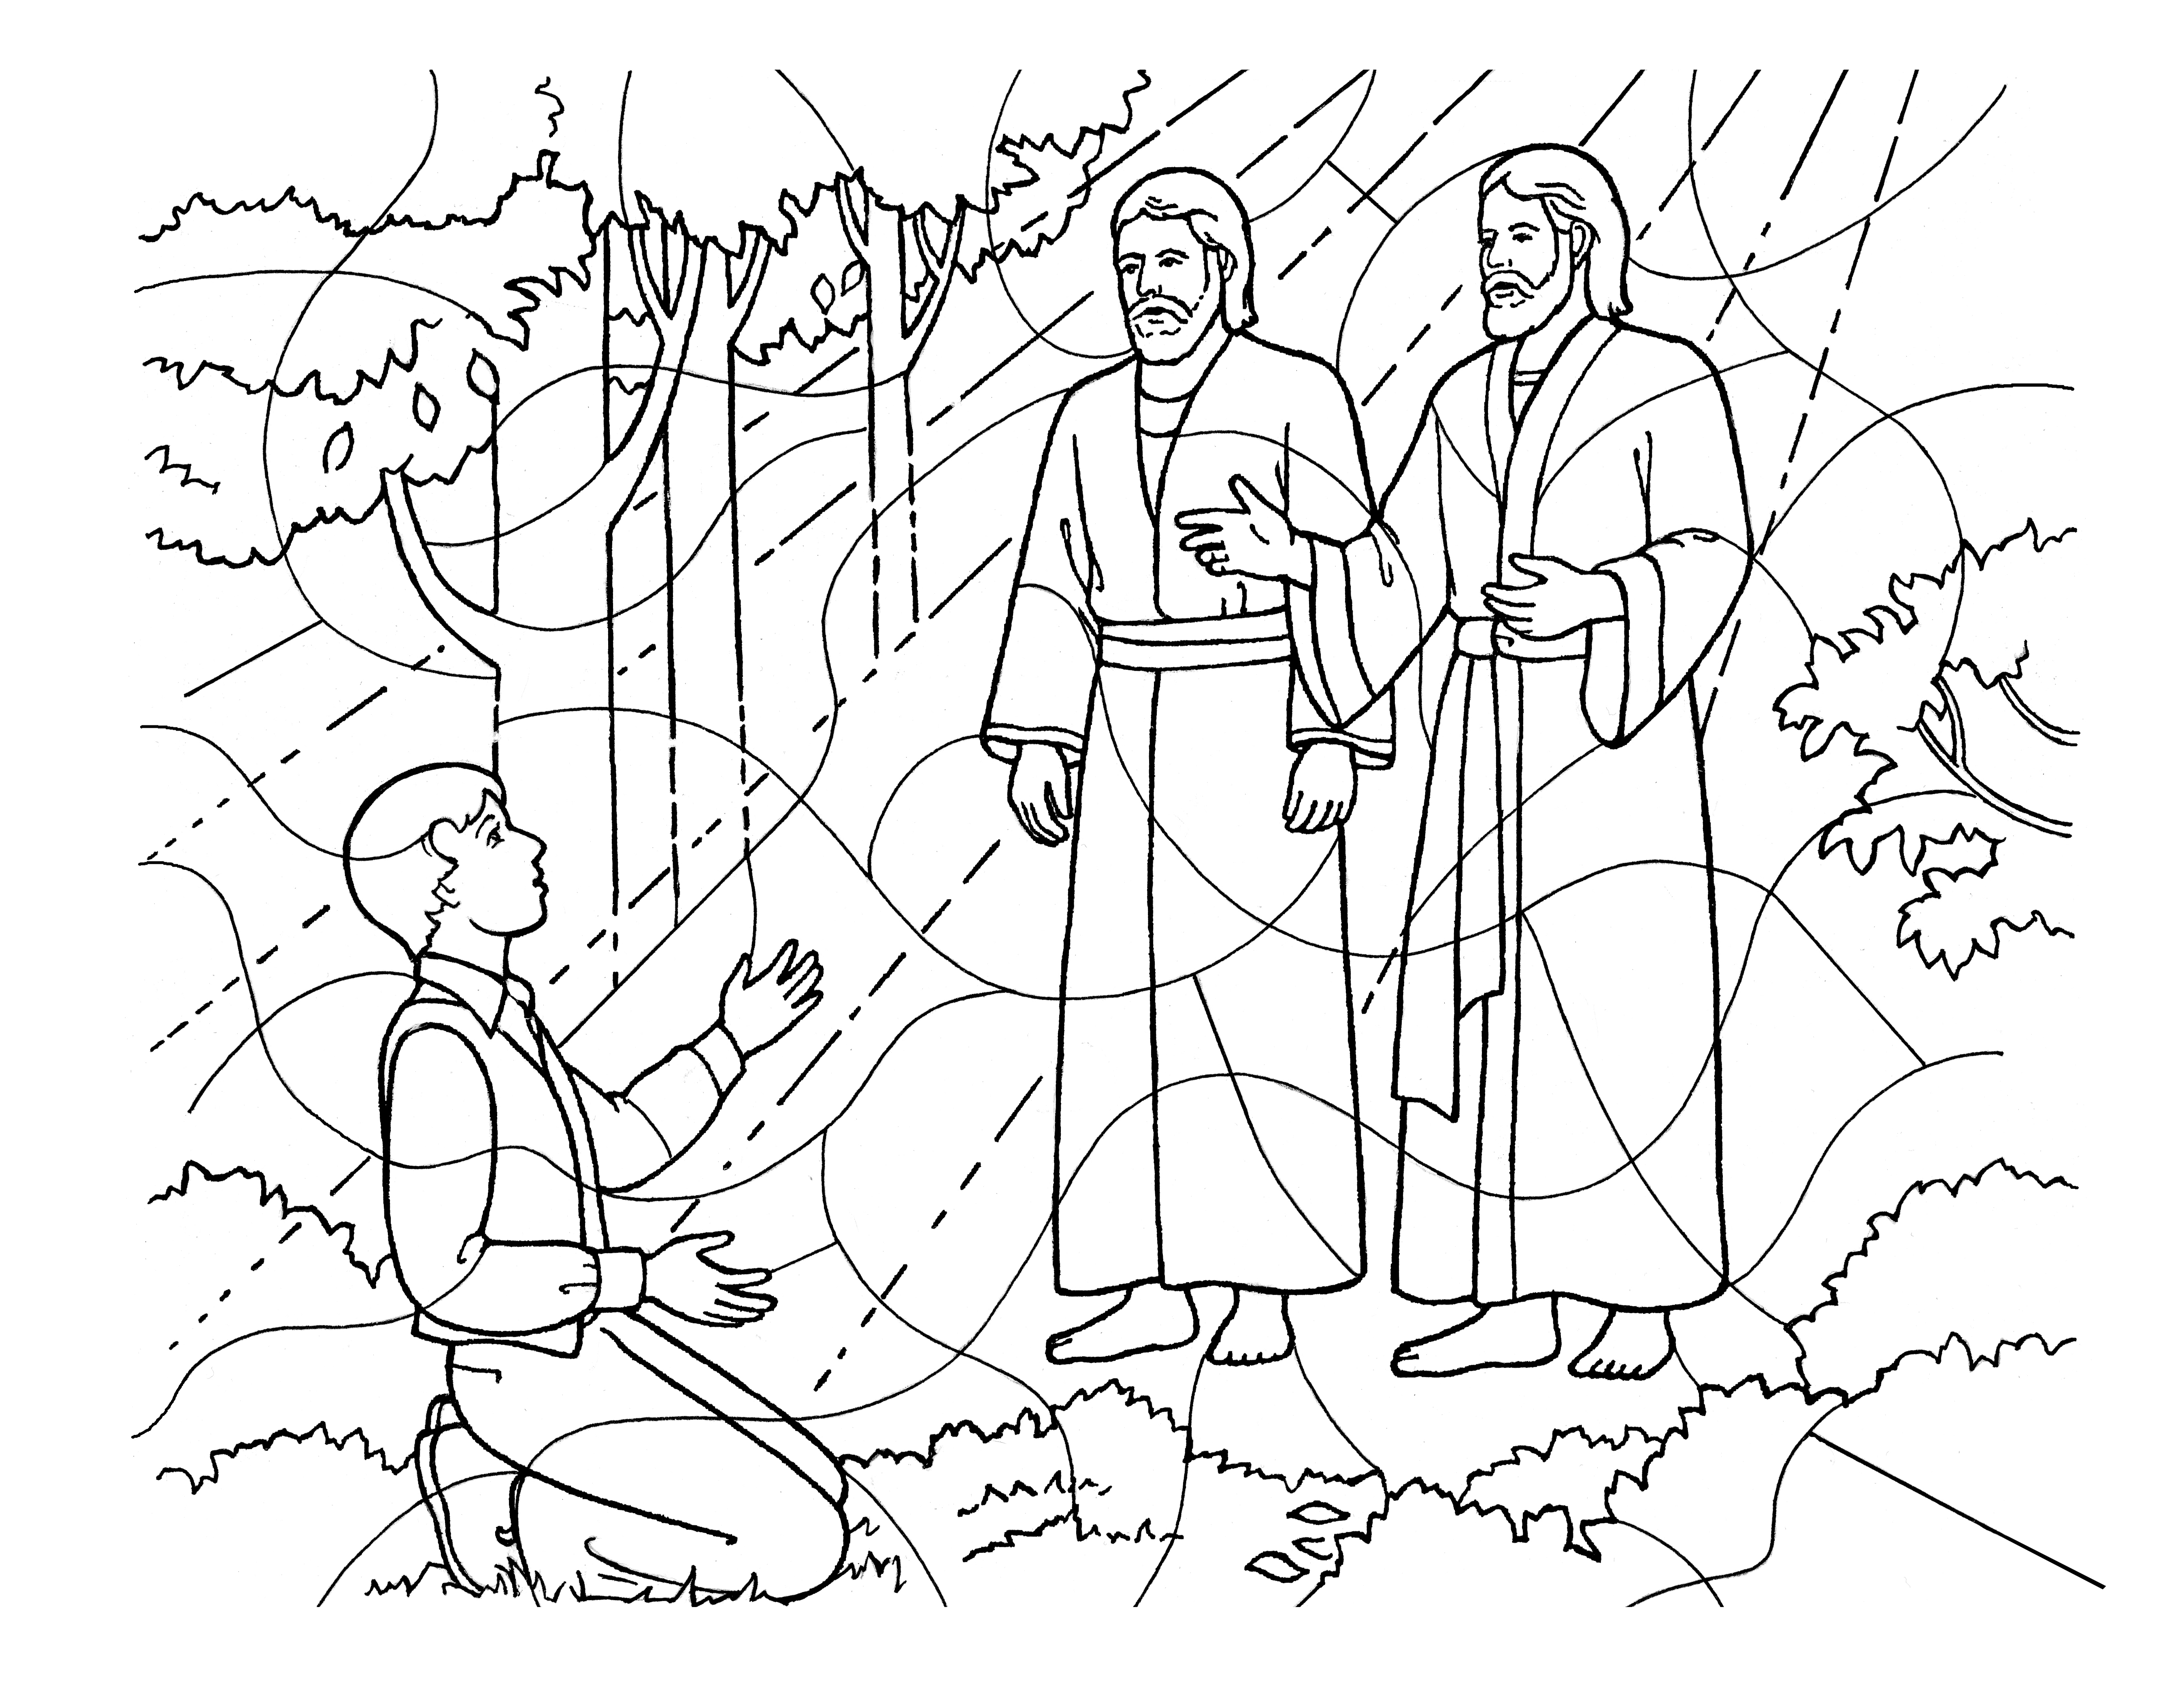 A coloring page of Heavenly Father and Jesus Christ appearing to Joseph Smith.